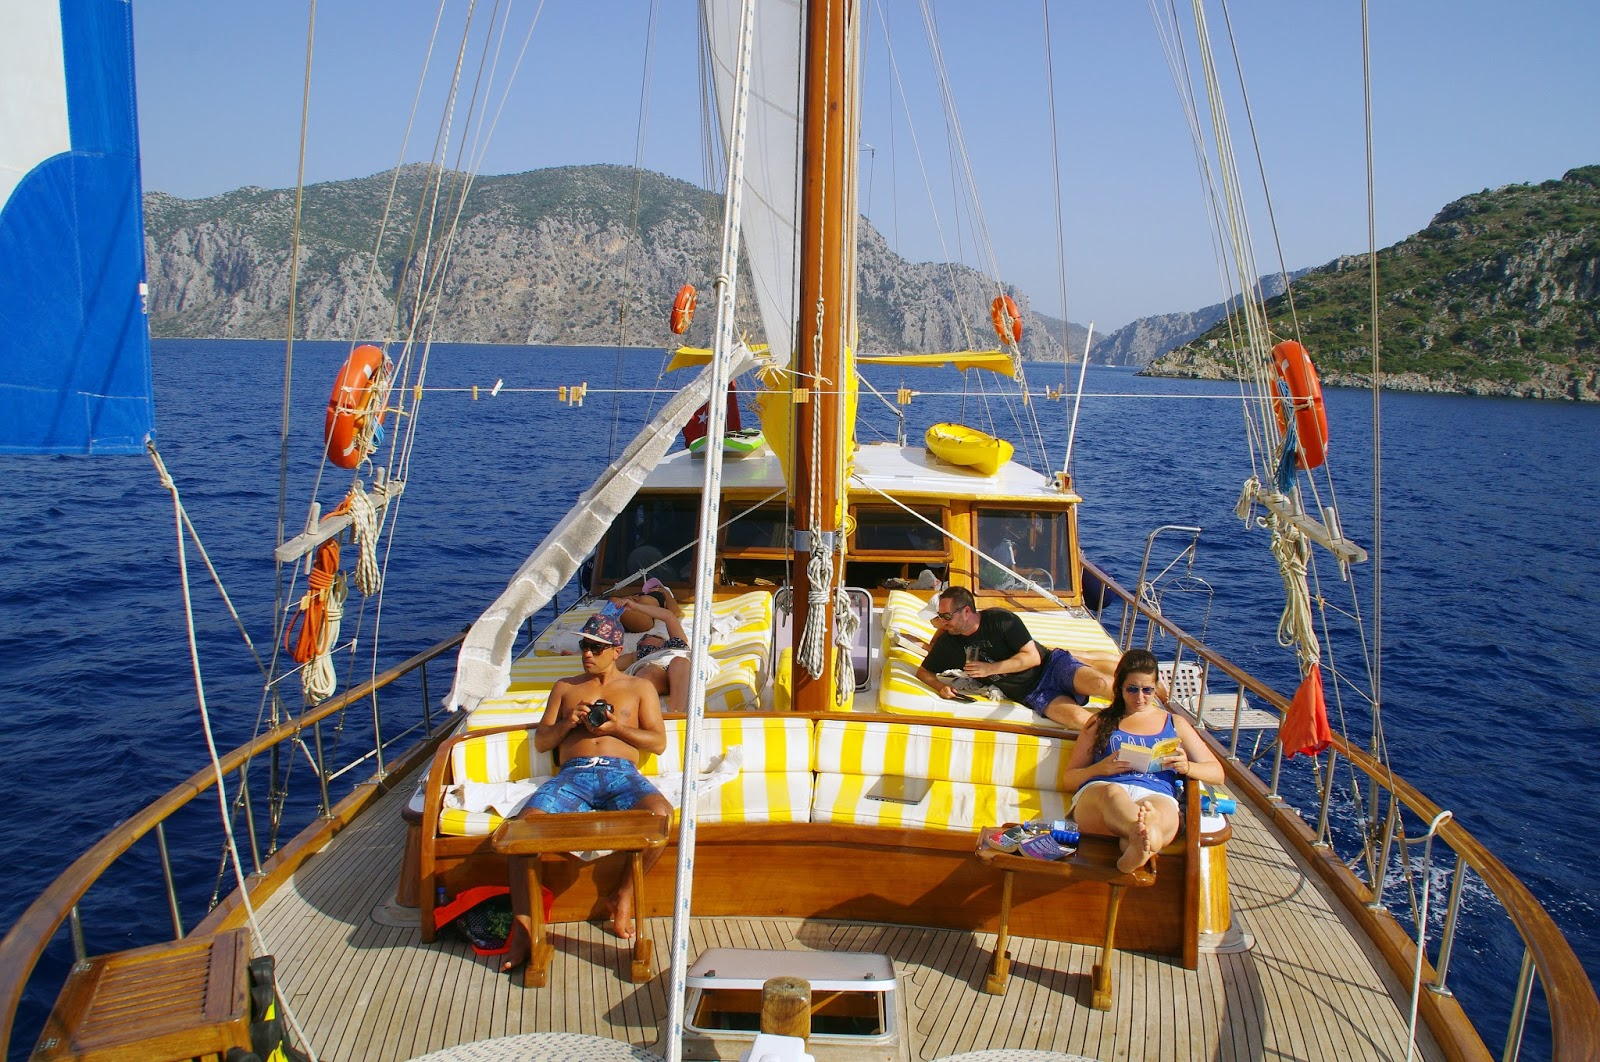 Relaxing on Turkey Sailing Boat